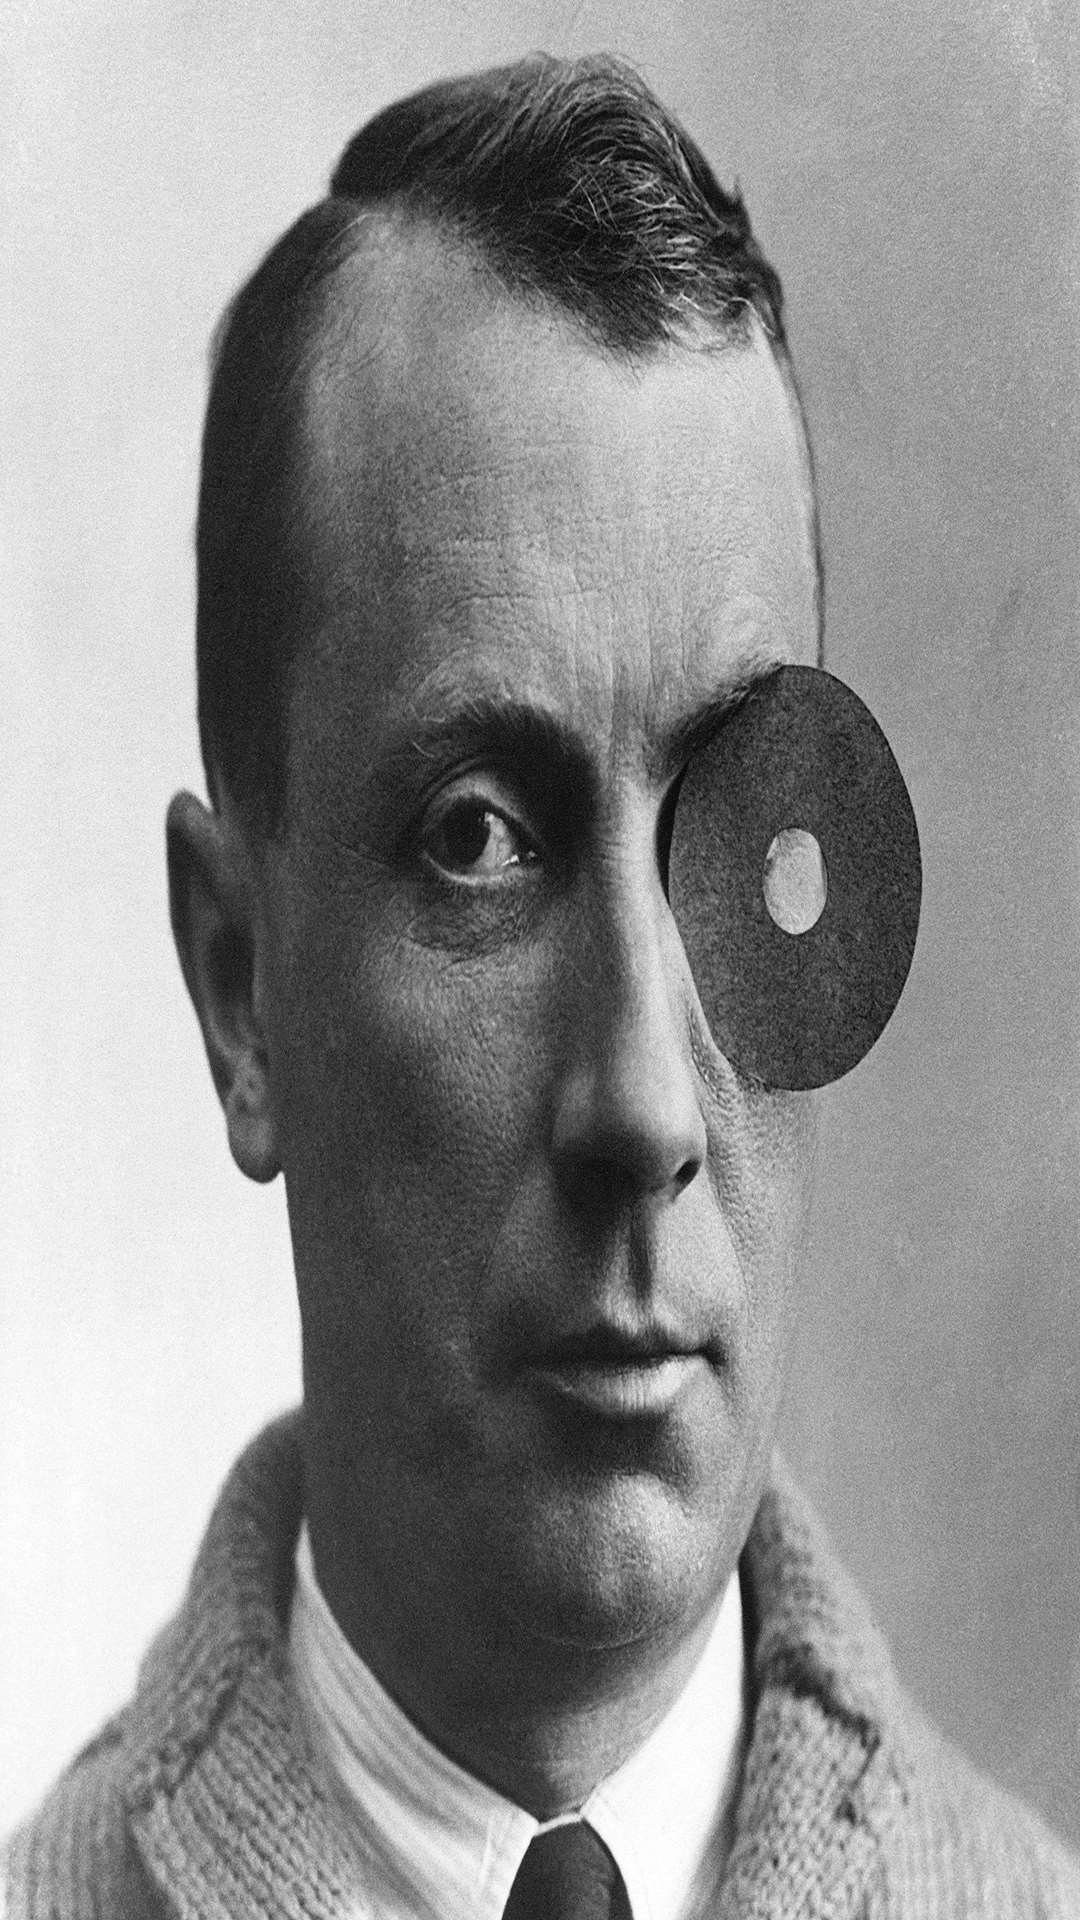 Jean Hans Arp was a German-French sculptor, painter, poet, and abstract artist